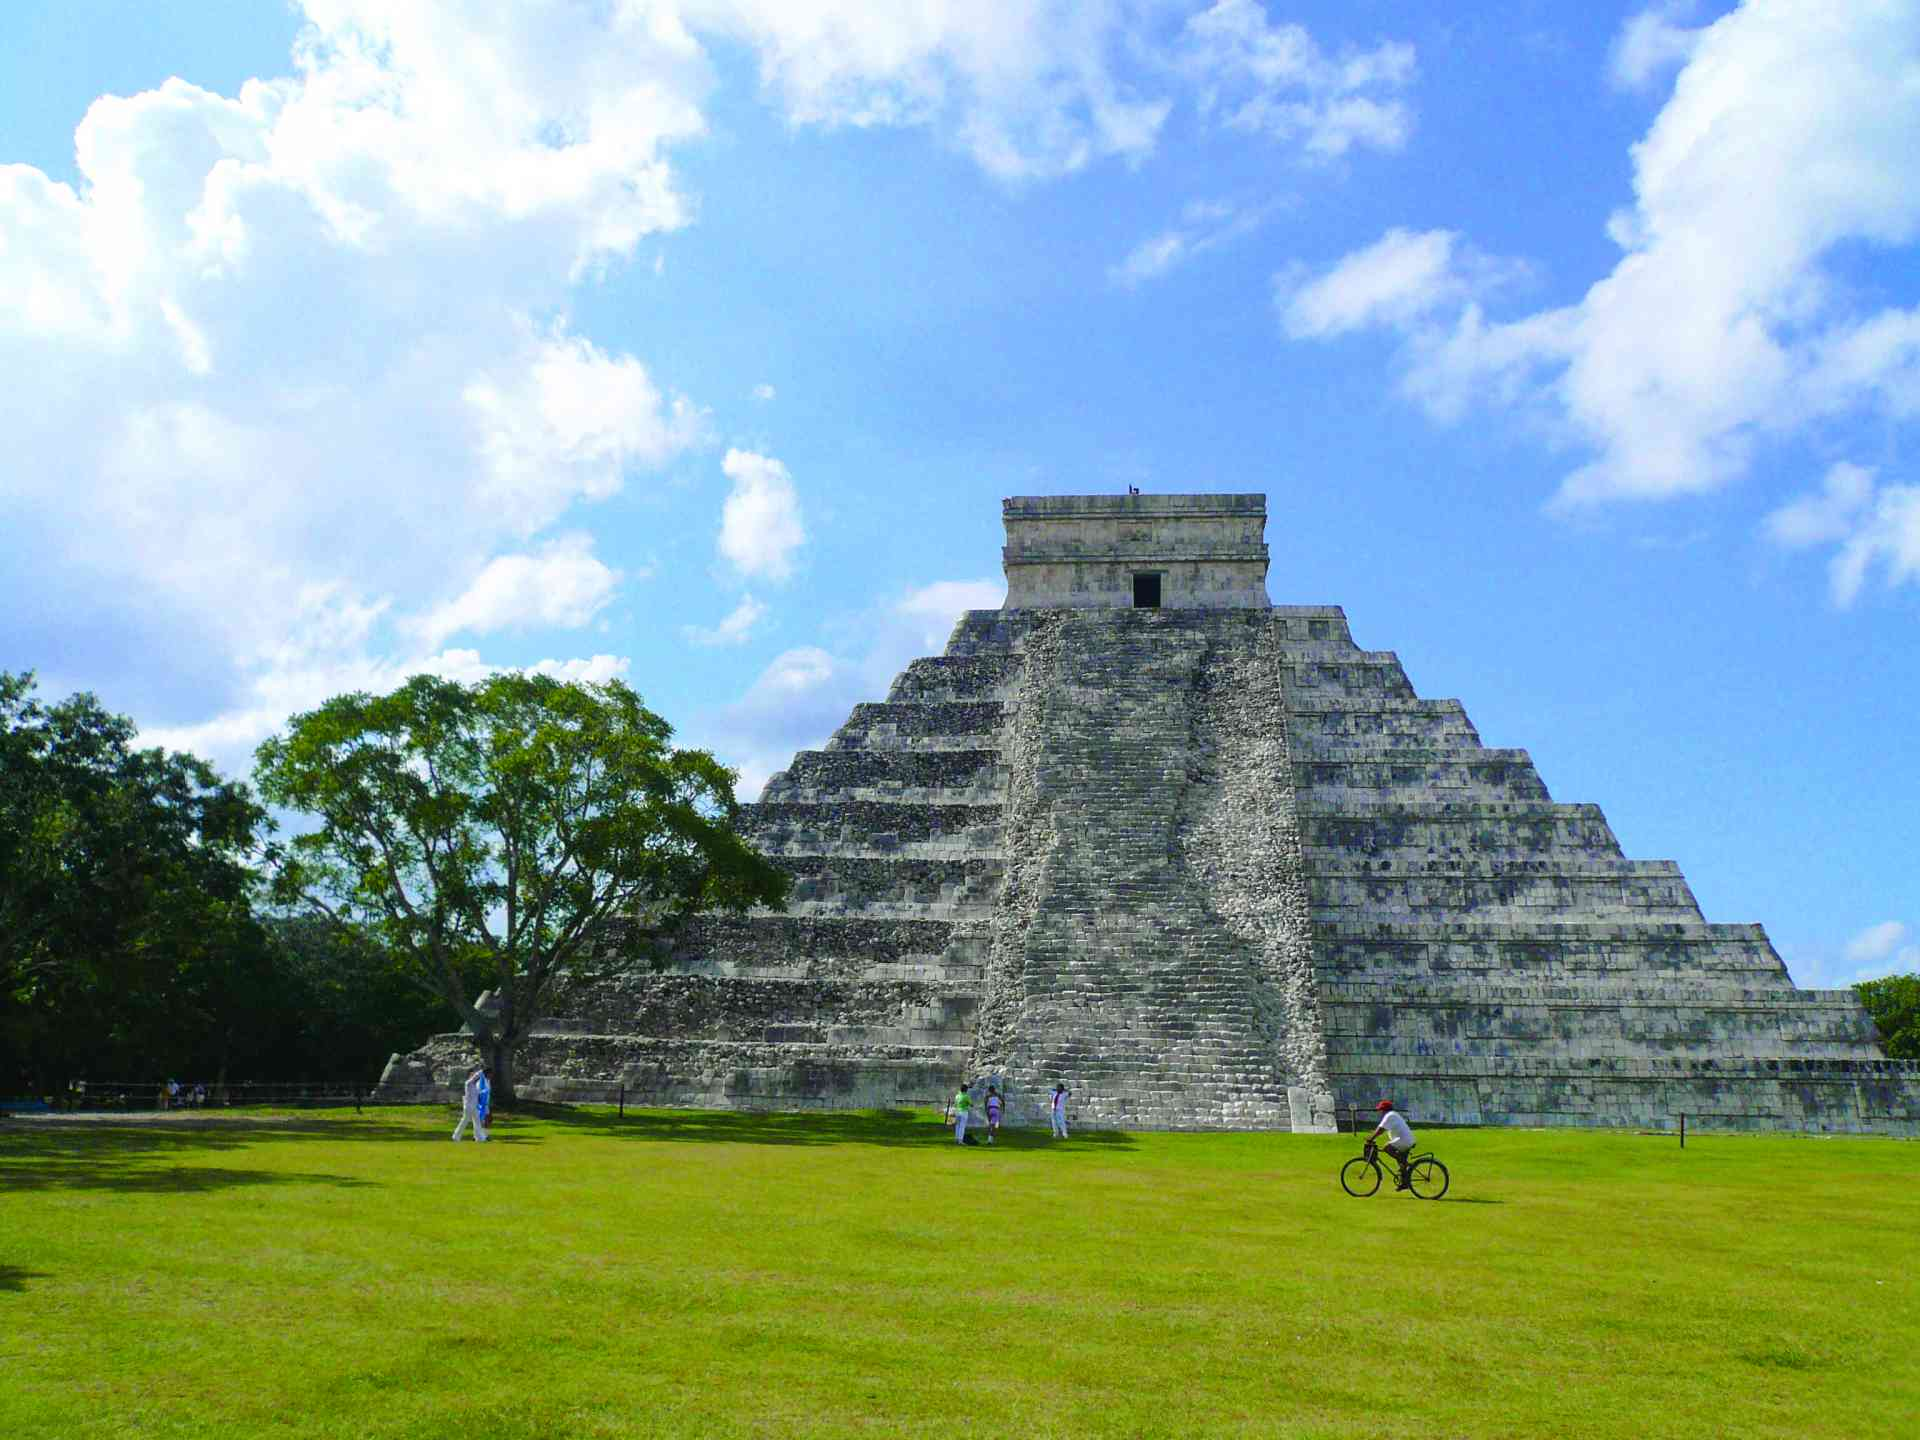 Chichen Itza, Mexico by Marion Bunnik